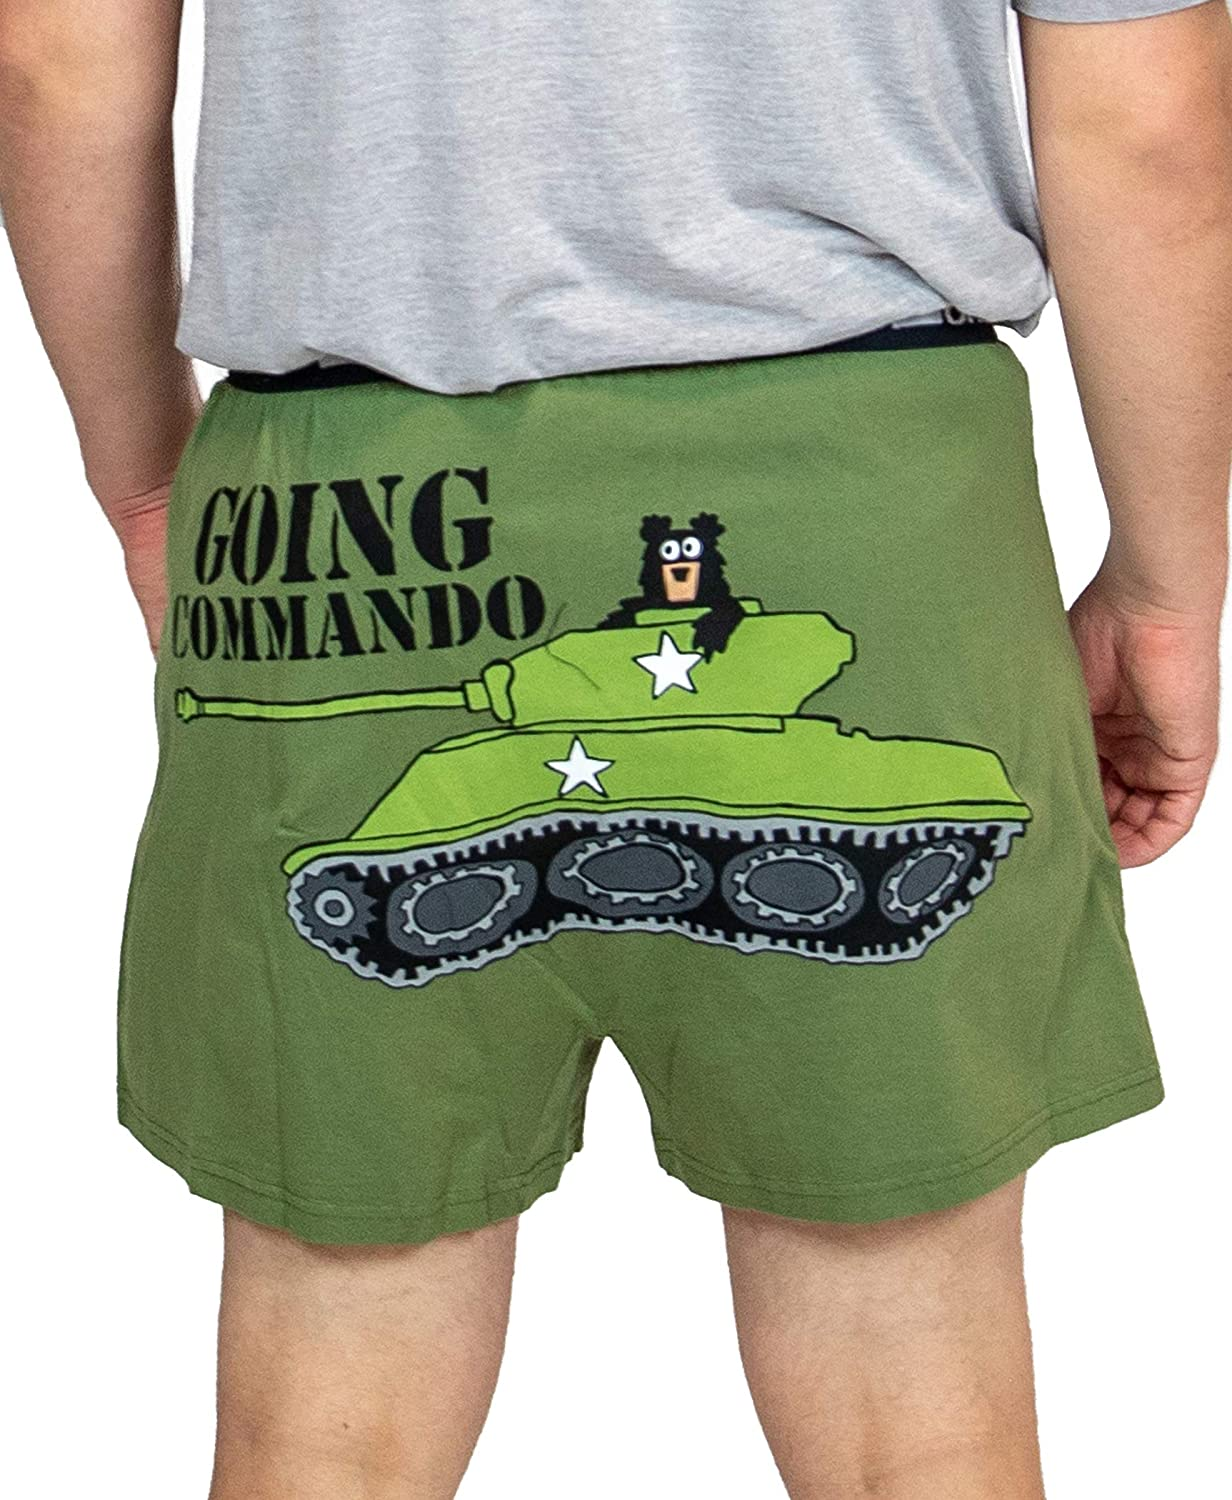 Humorous Underwear Lazy One Funny Boxers Novelty Boxer Shorts Gag Gifts for Men